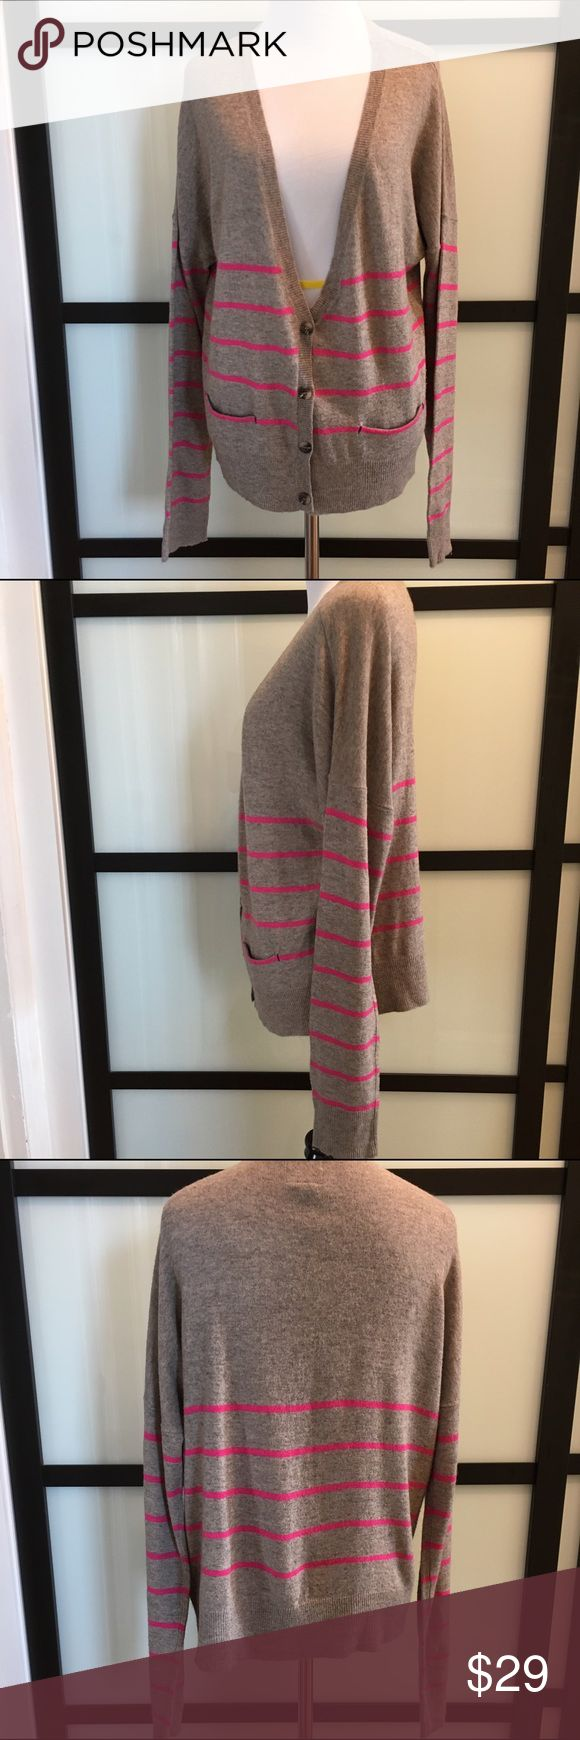 AE Outfitters pink neutral striped spring cardigan Four buttons, front pocket details. Great condition American Eagle Outfitters Sweaters Cardigans